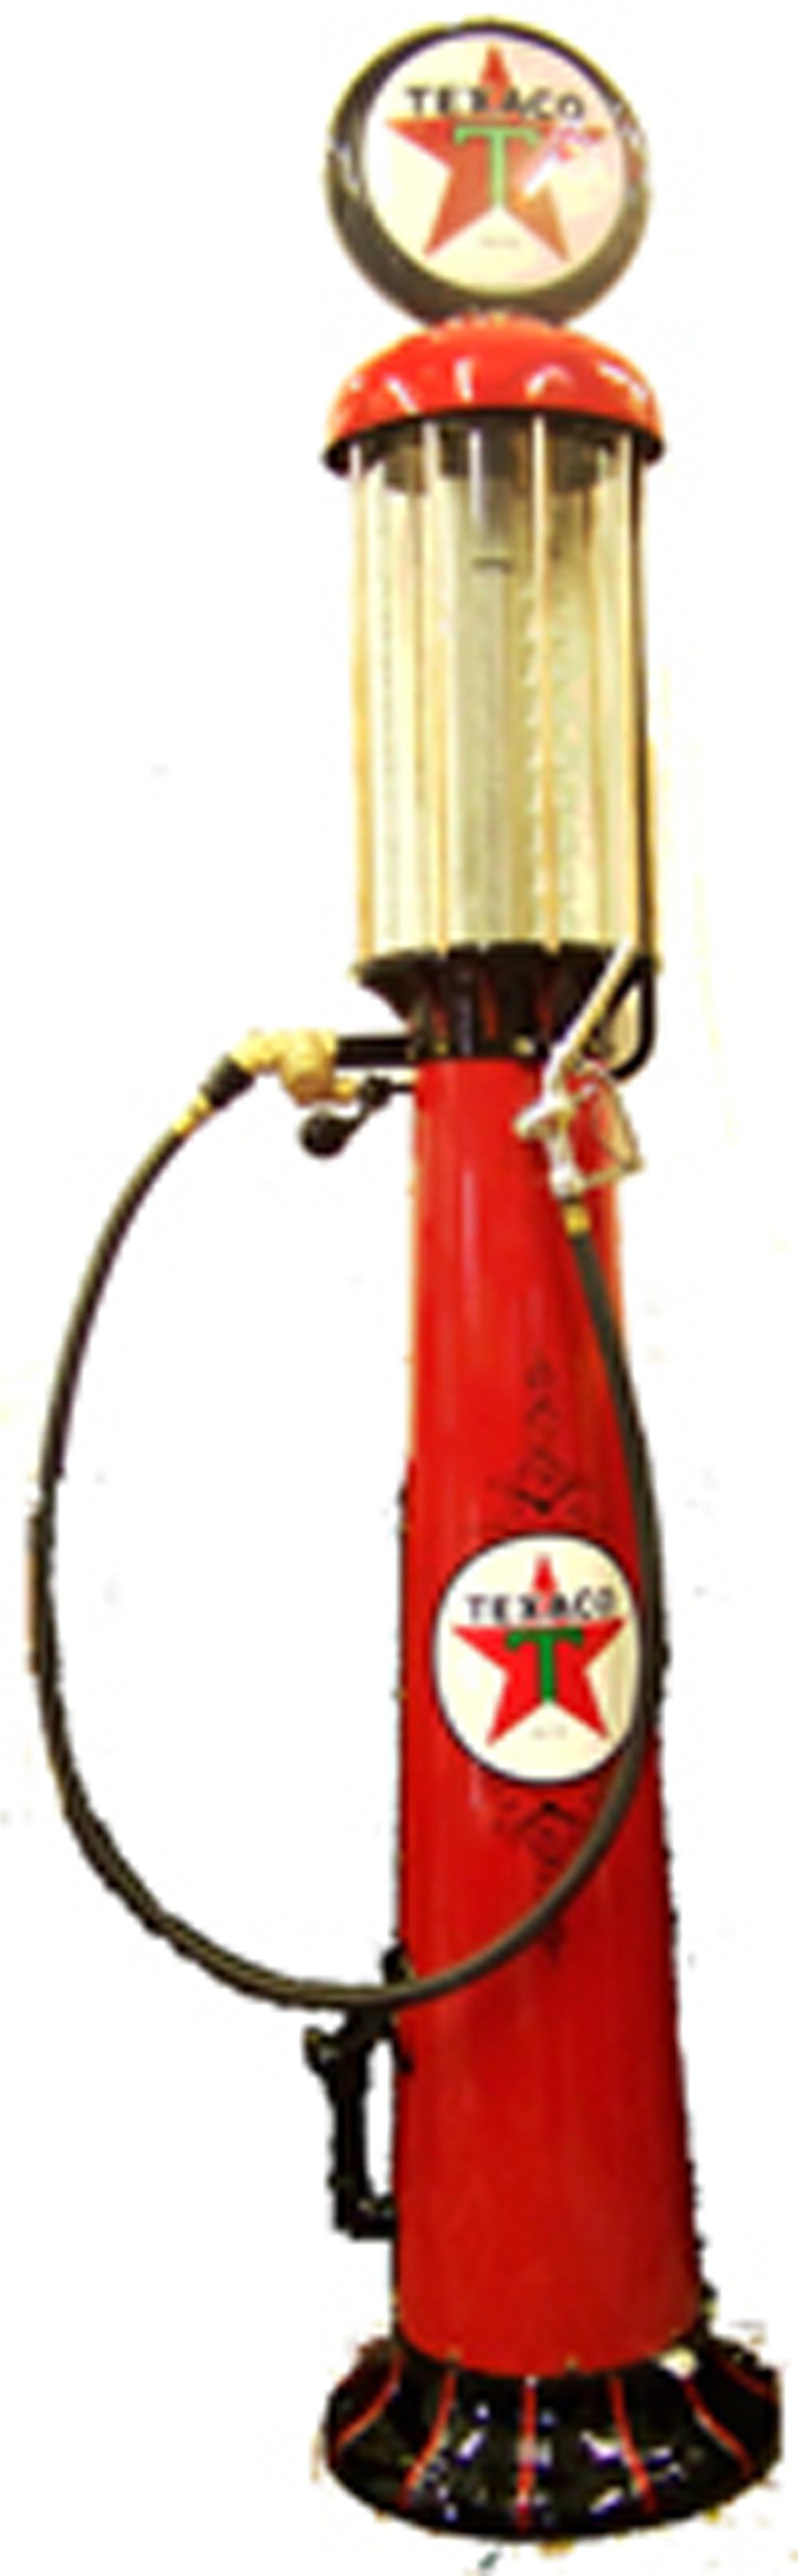 Unparalleled Texaco Filling Station Wayne model #519 gas pump. - Front 3/4 - 97989